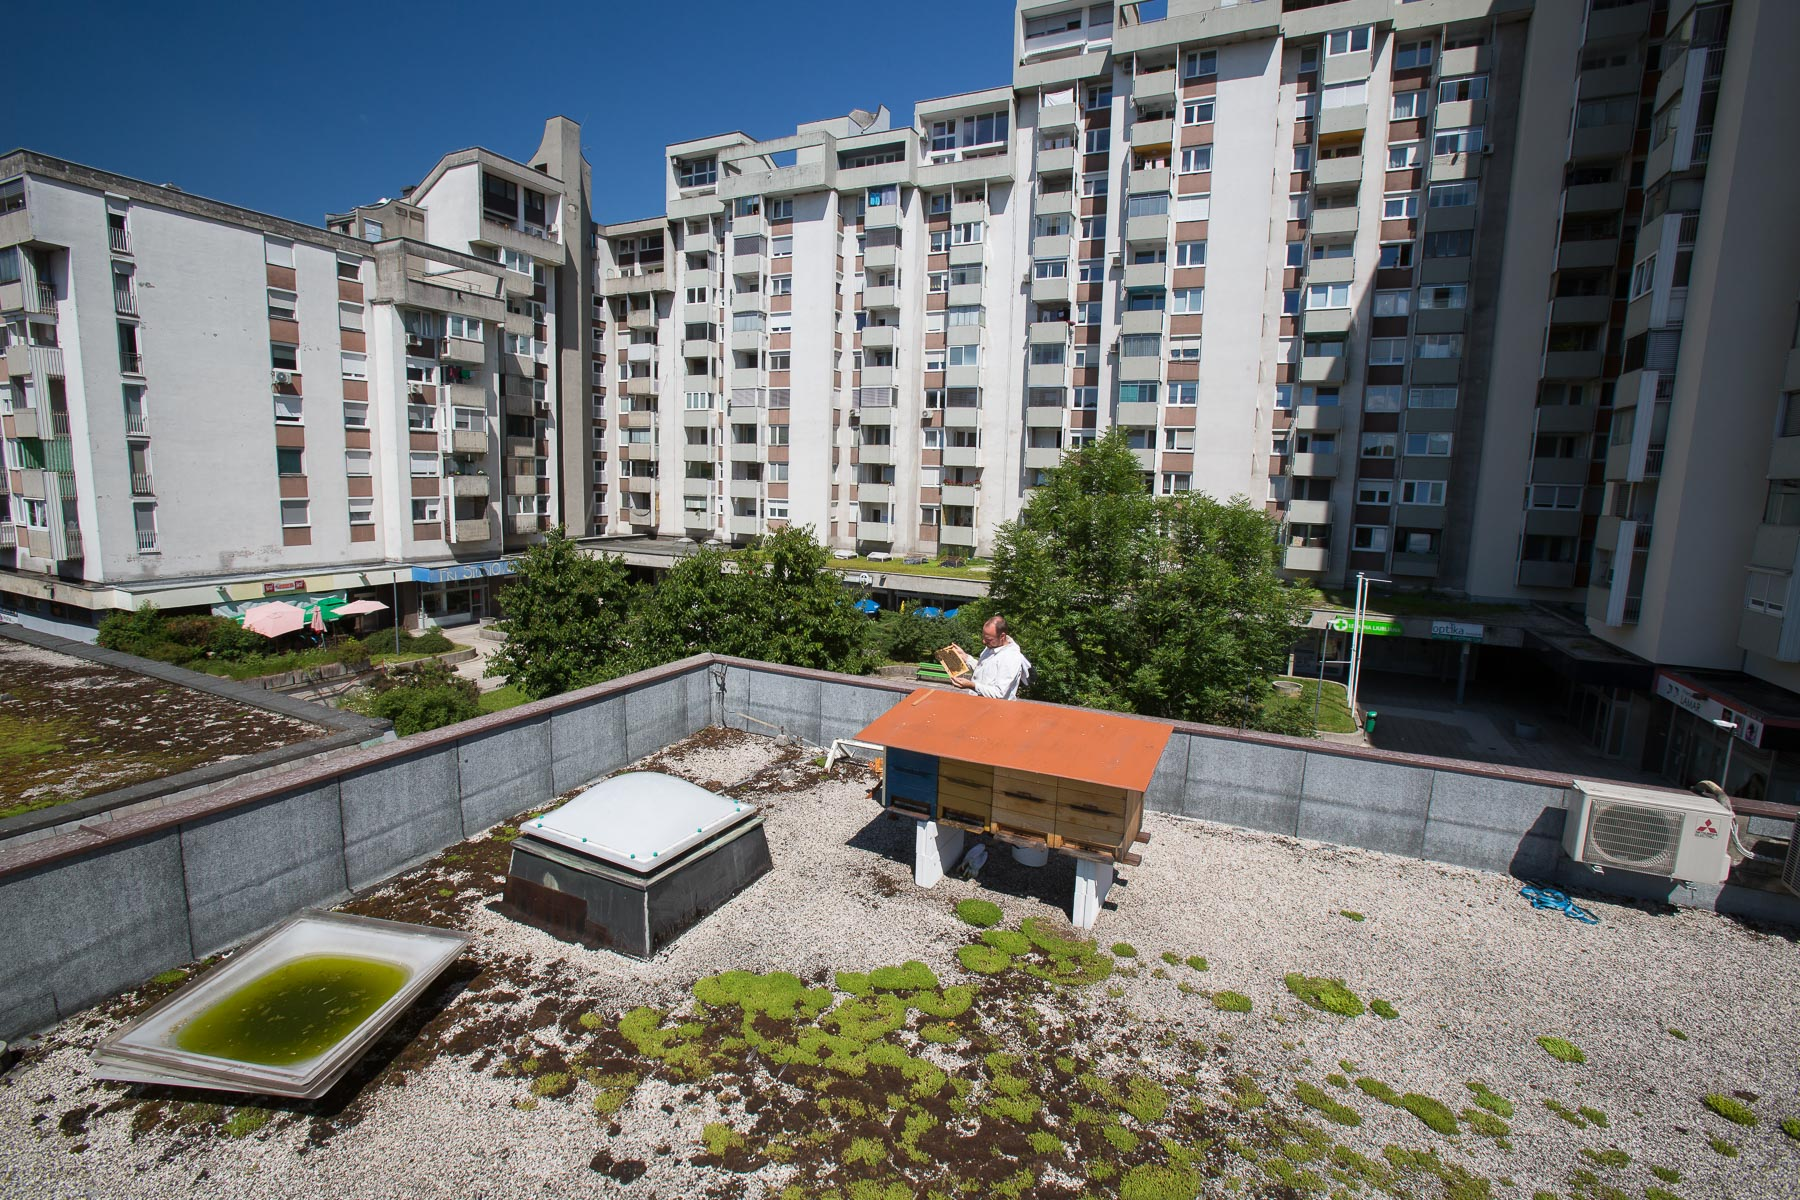 The beehives on the rooftop of Španski borcu cultural center are embraced by apartment buildings on one side while the other side is open towards the Golovec hill.